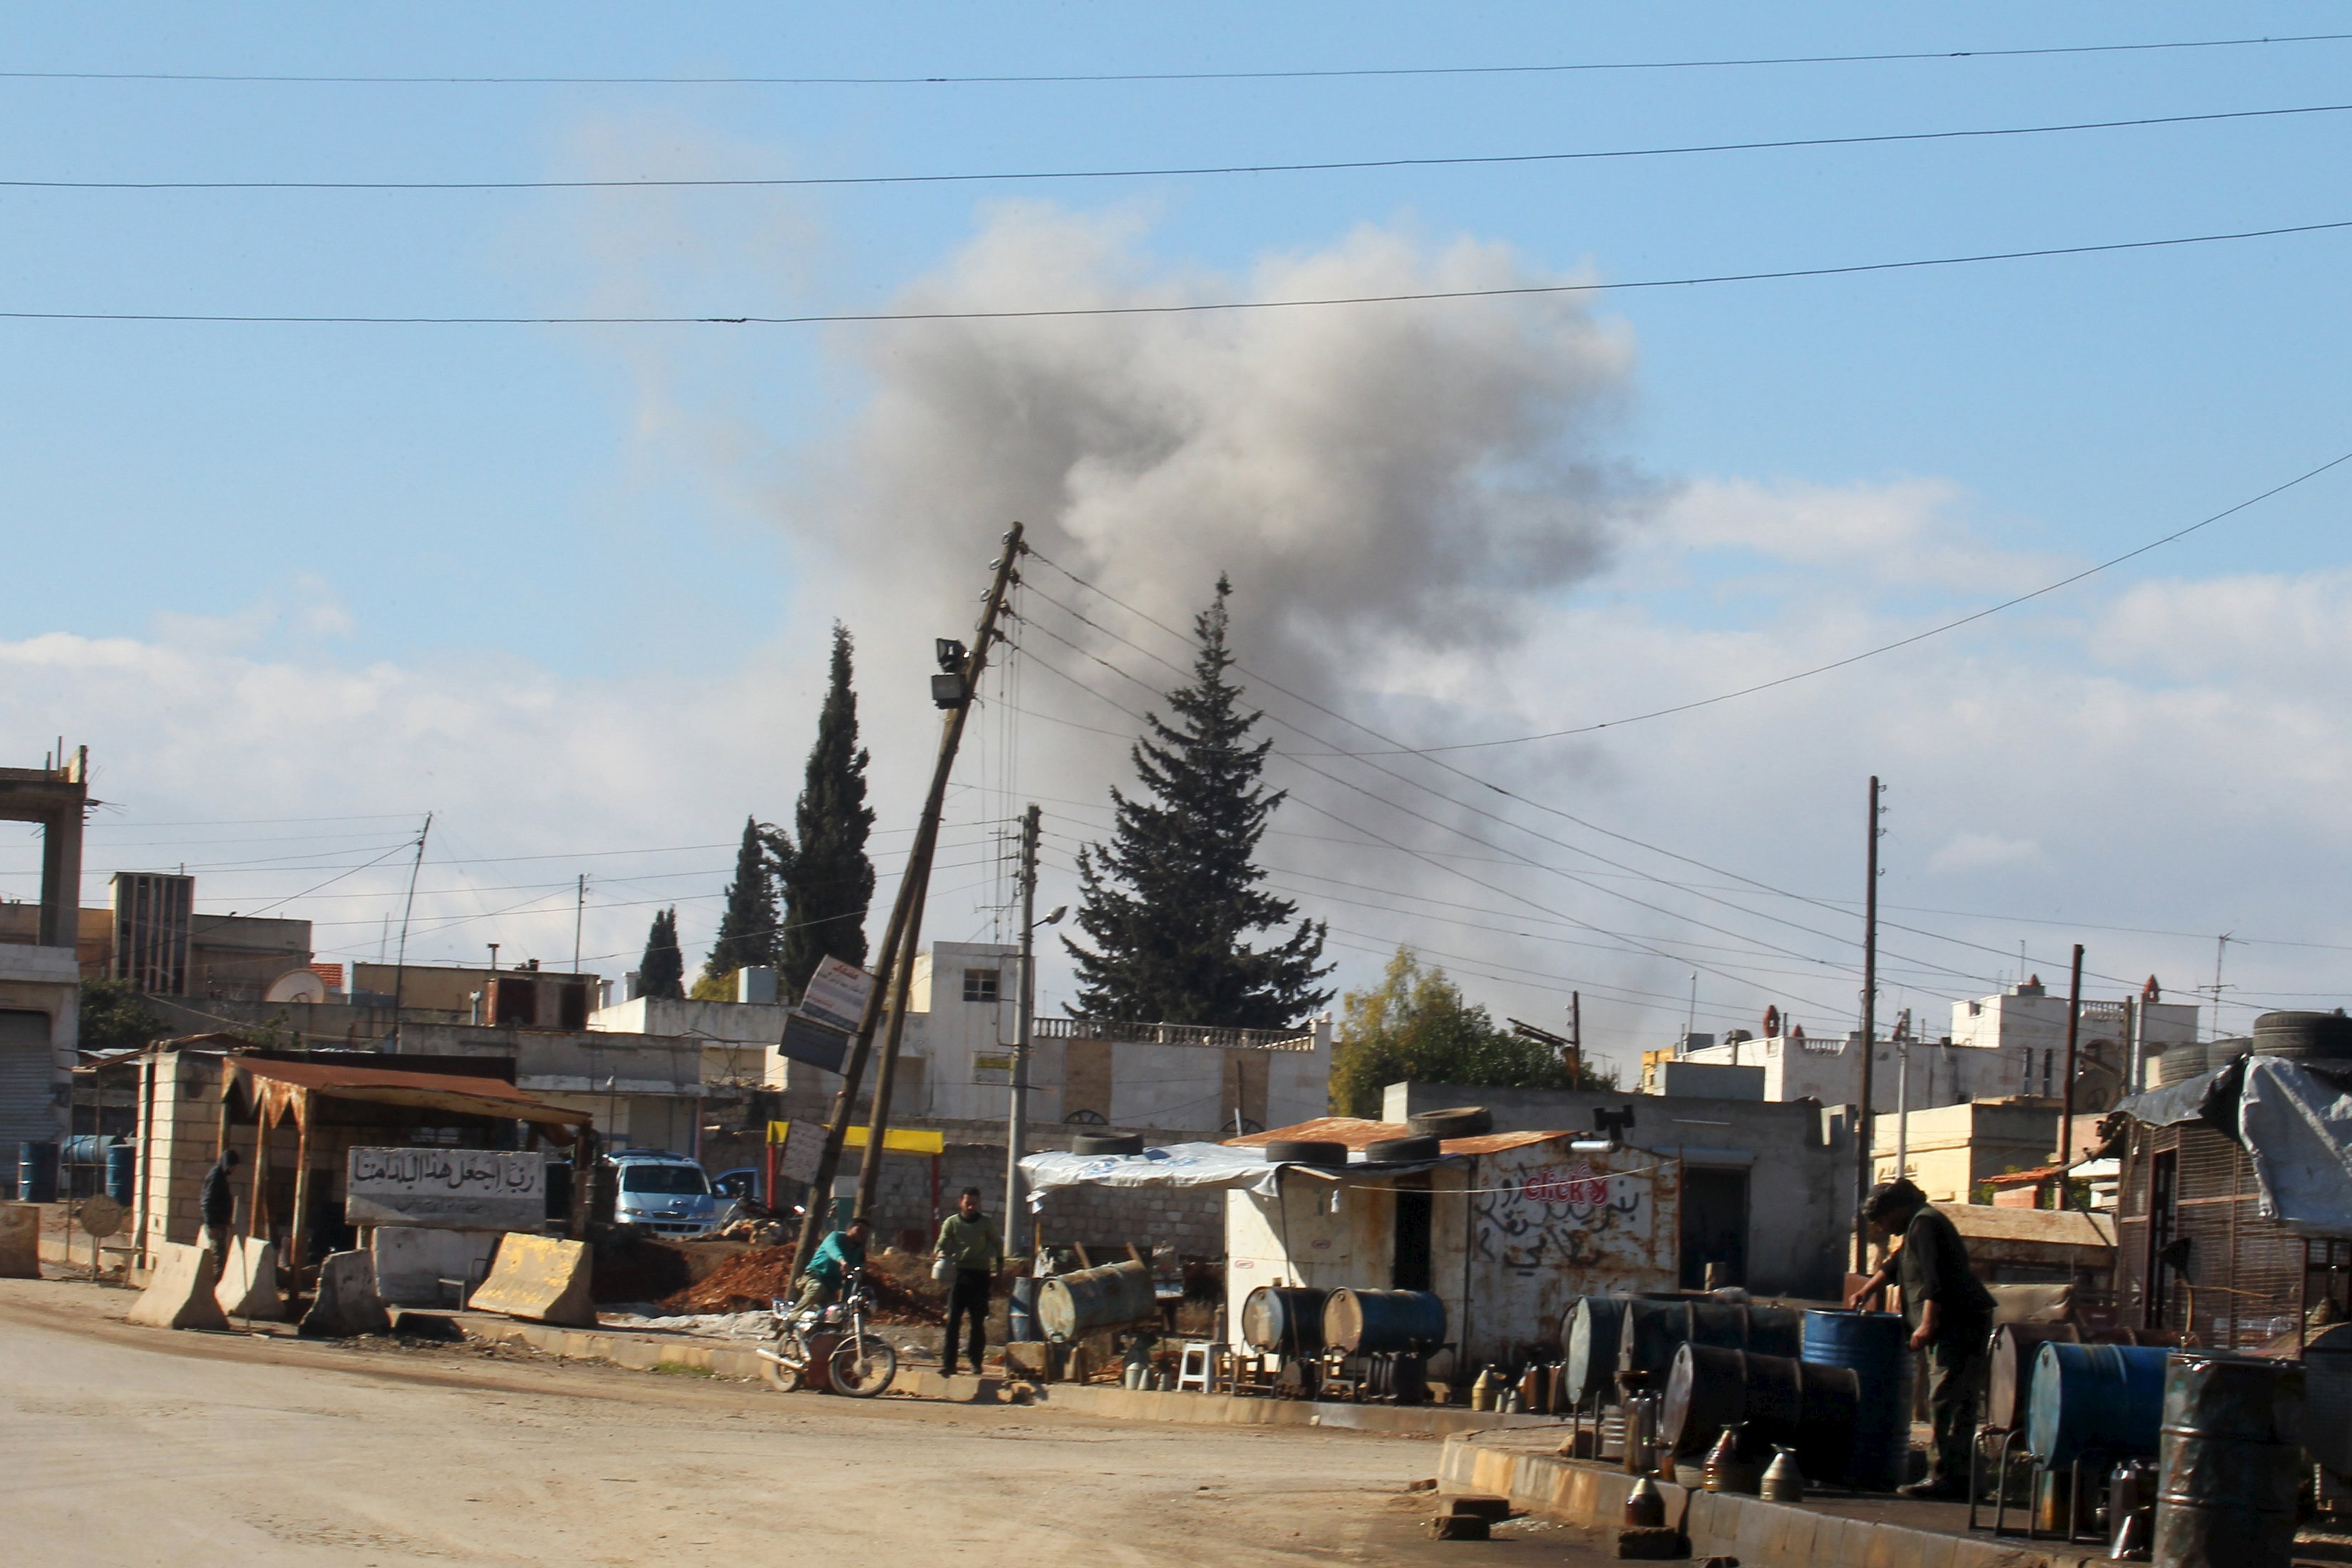 Smoke rises in a site hit by what activists said were airstrikes carried out by the Russian air force in the town of Saraqib, in Idlib province, Syria January 9, 2016. Photo: Reuters